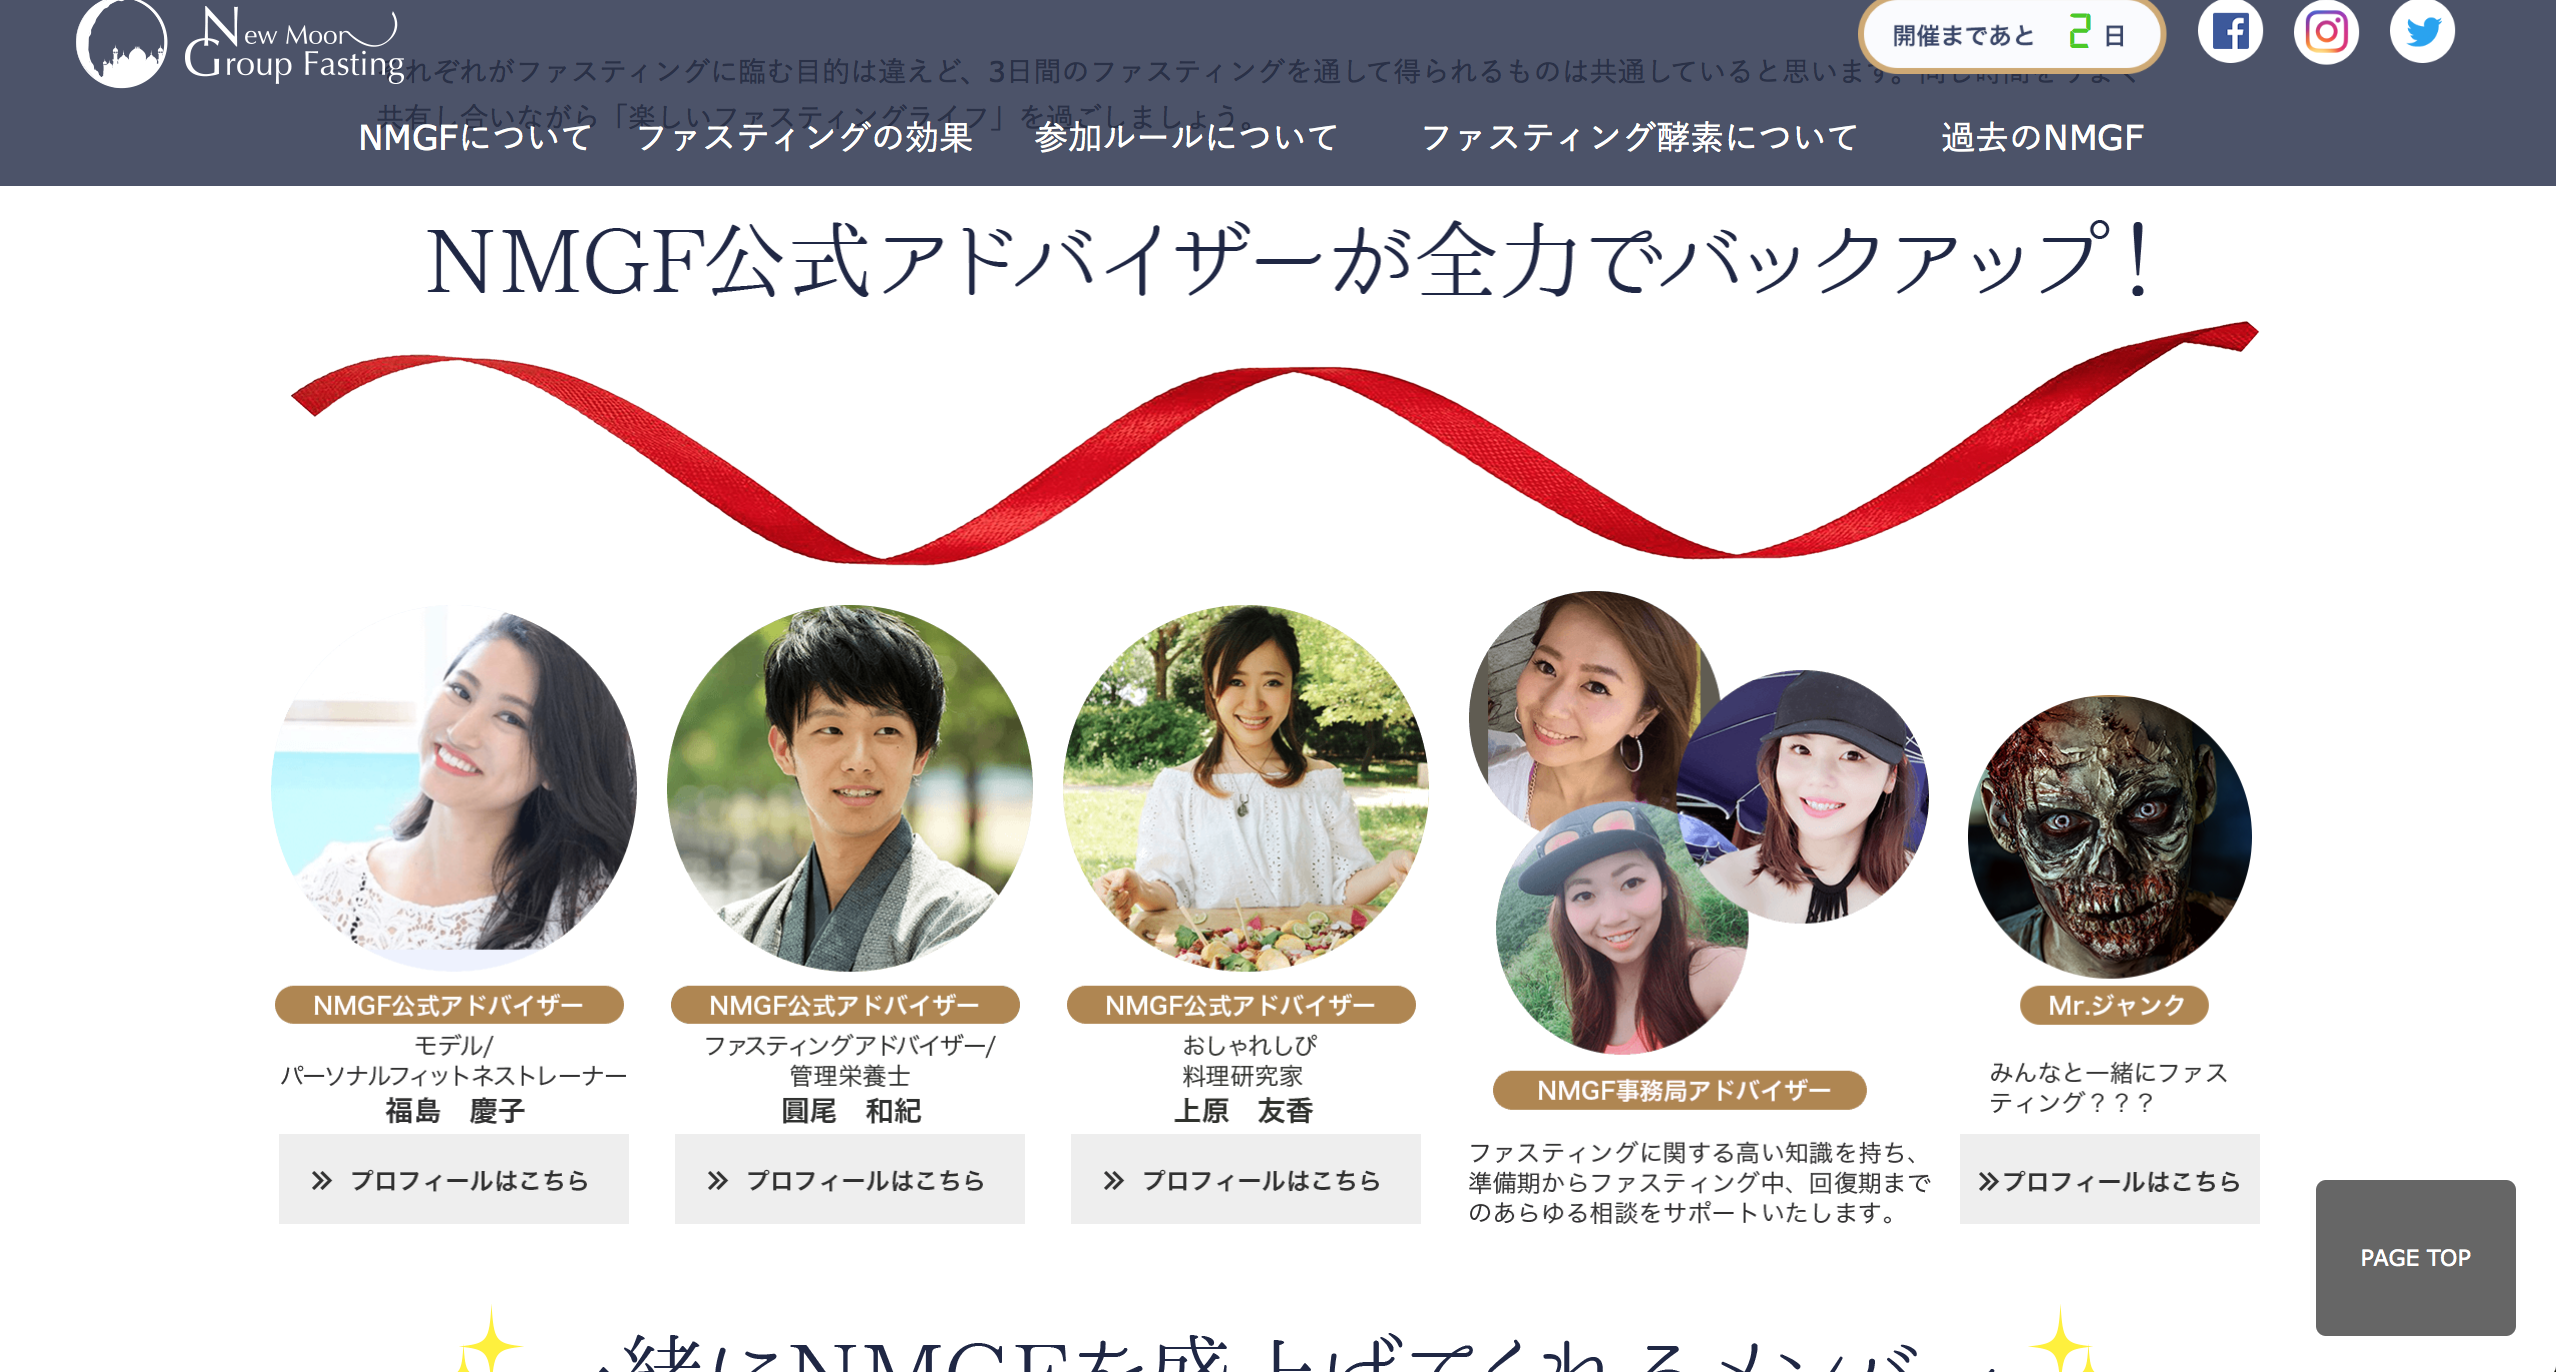 New Moon Group Fasting(NMGF)の公式アドバイザーを務めさせていただきます